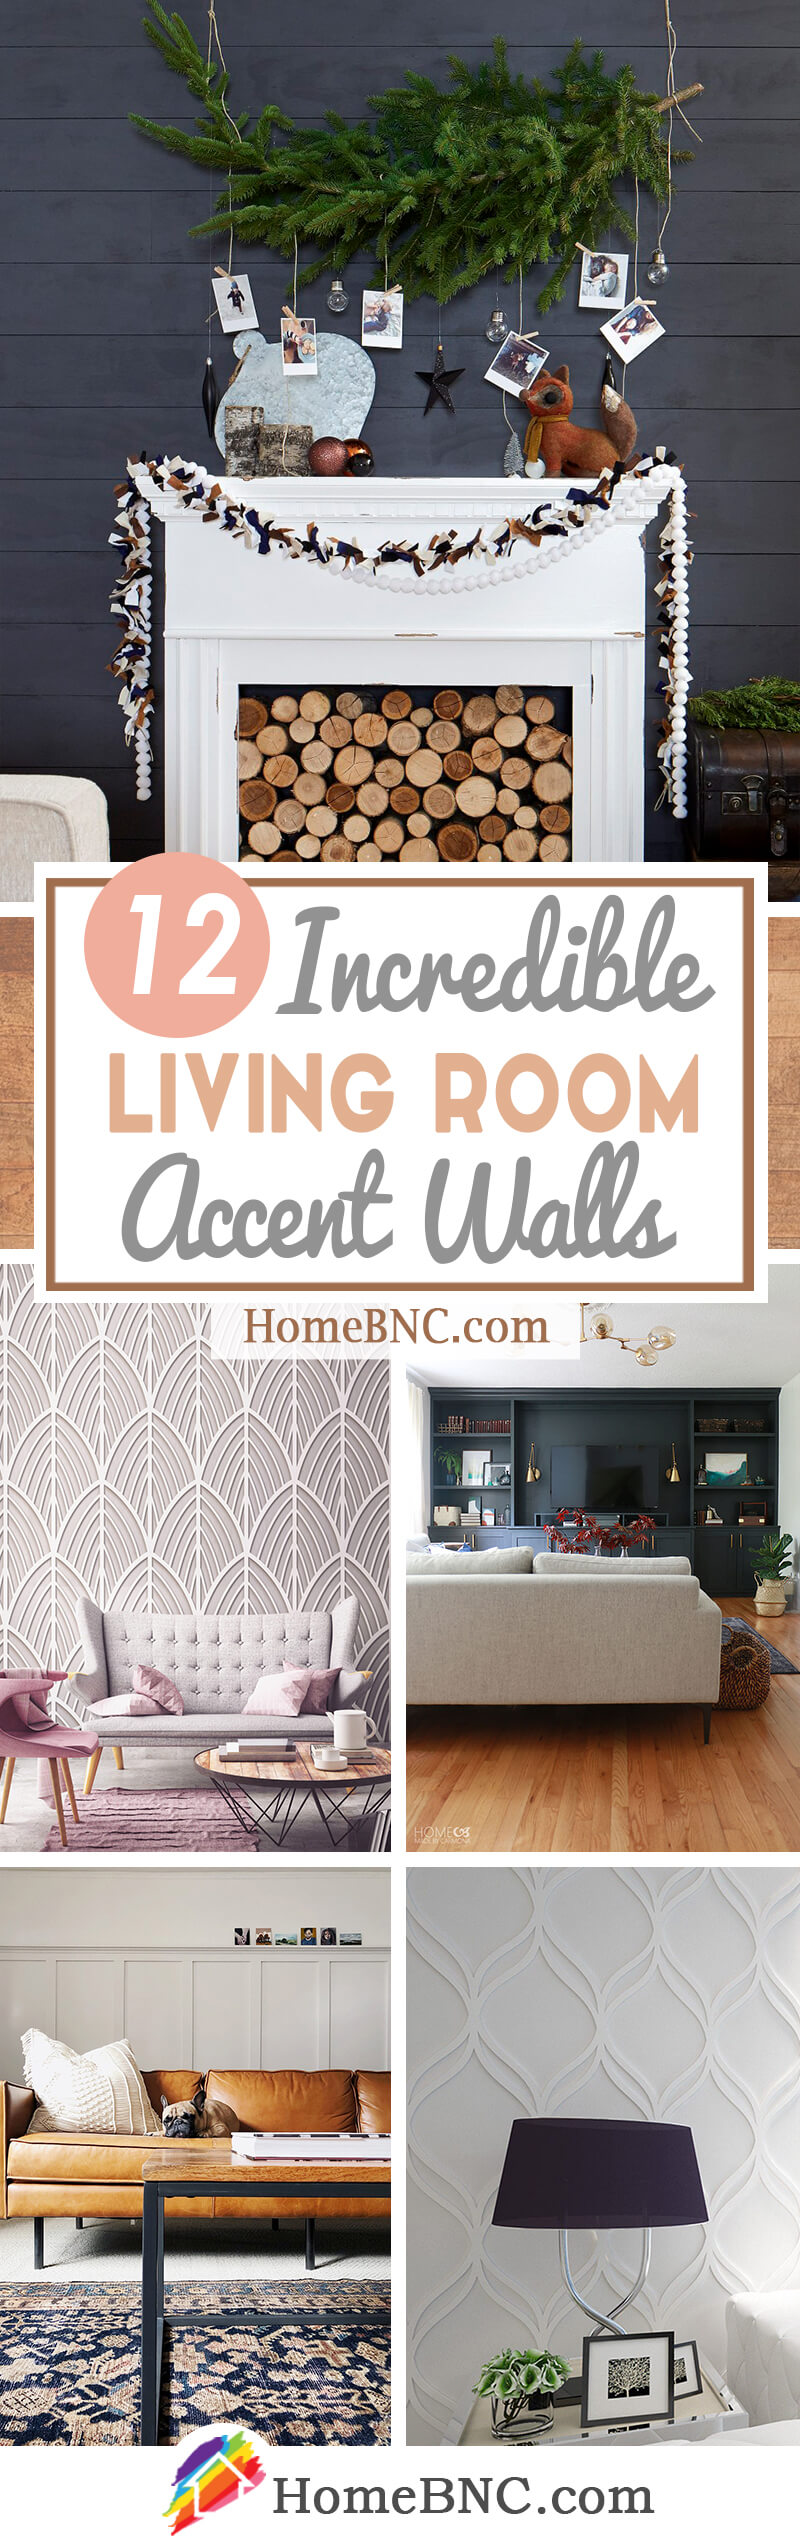 Living Room Accent Wall Design Ideas Living Room Accent Wall Ideas Wood 800x2546 Wallpaper Teahub Io